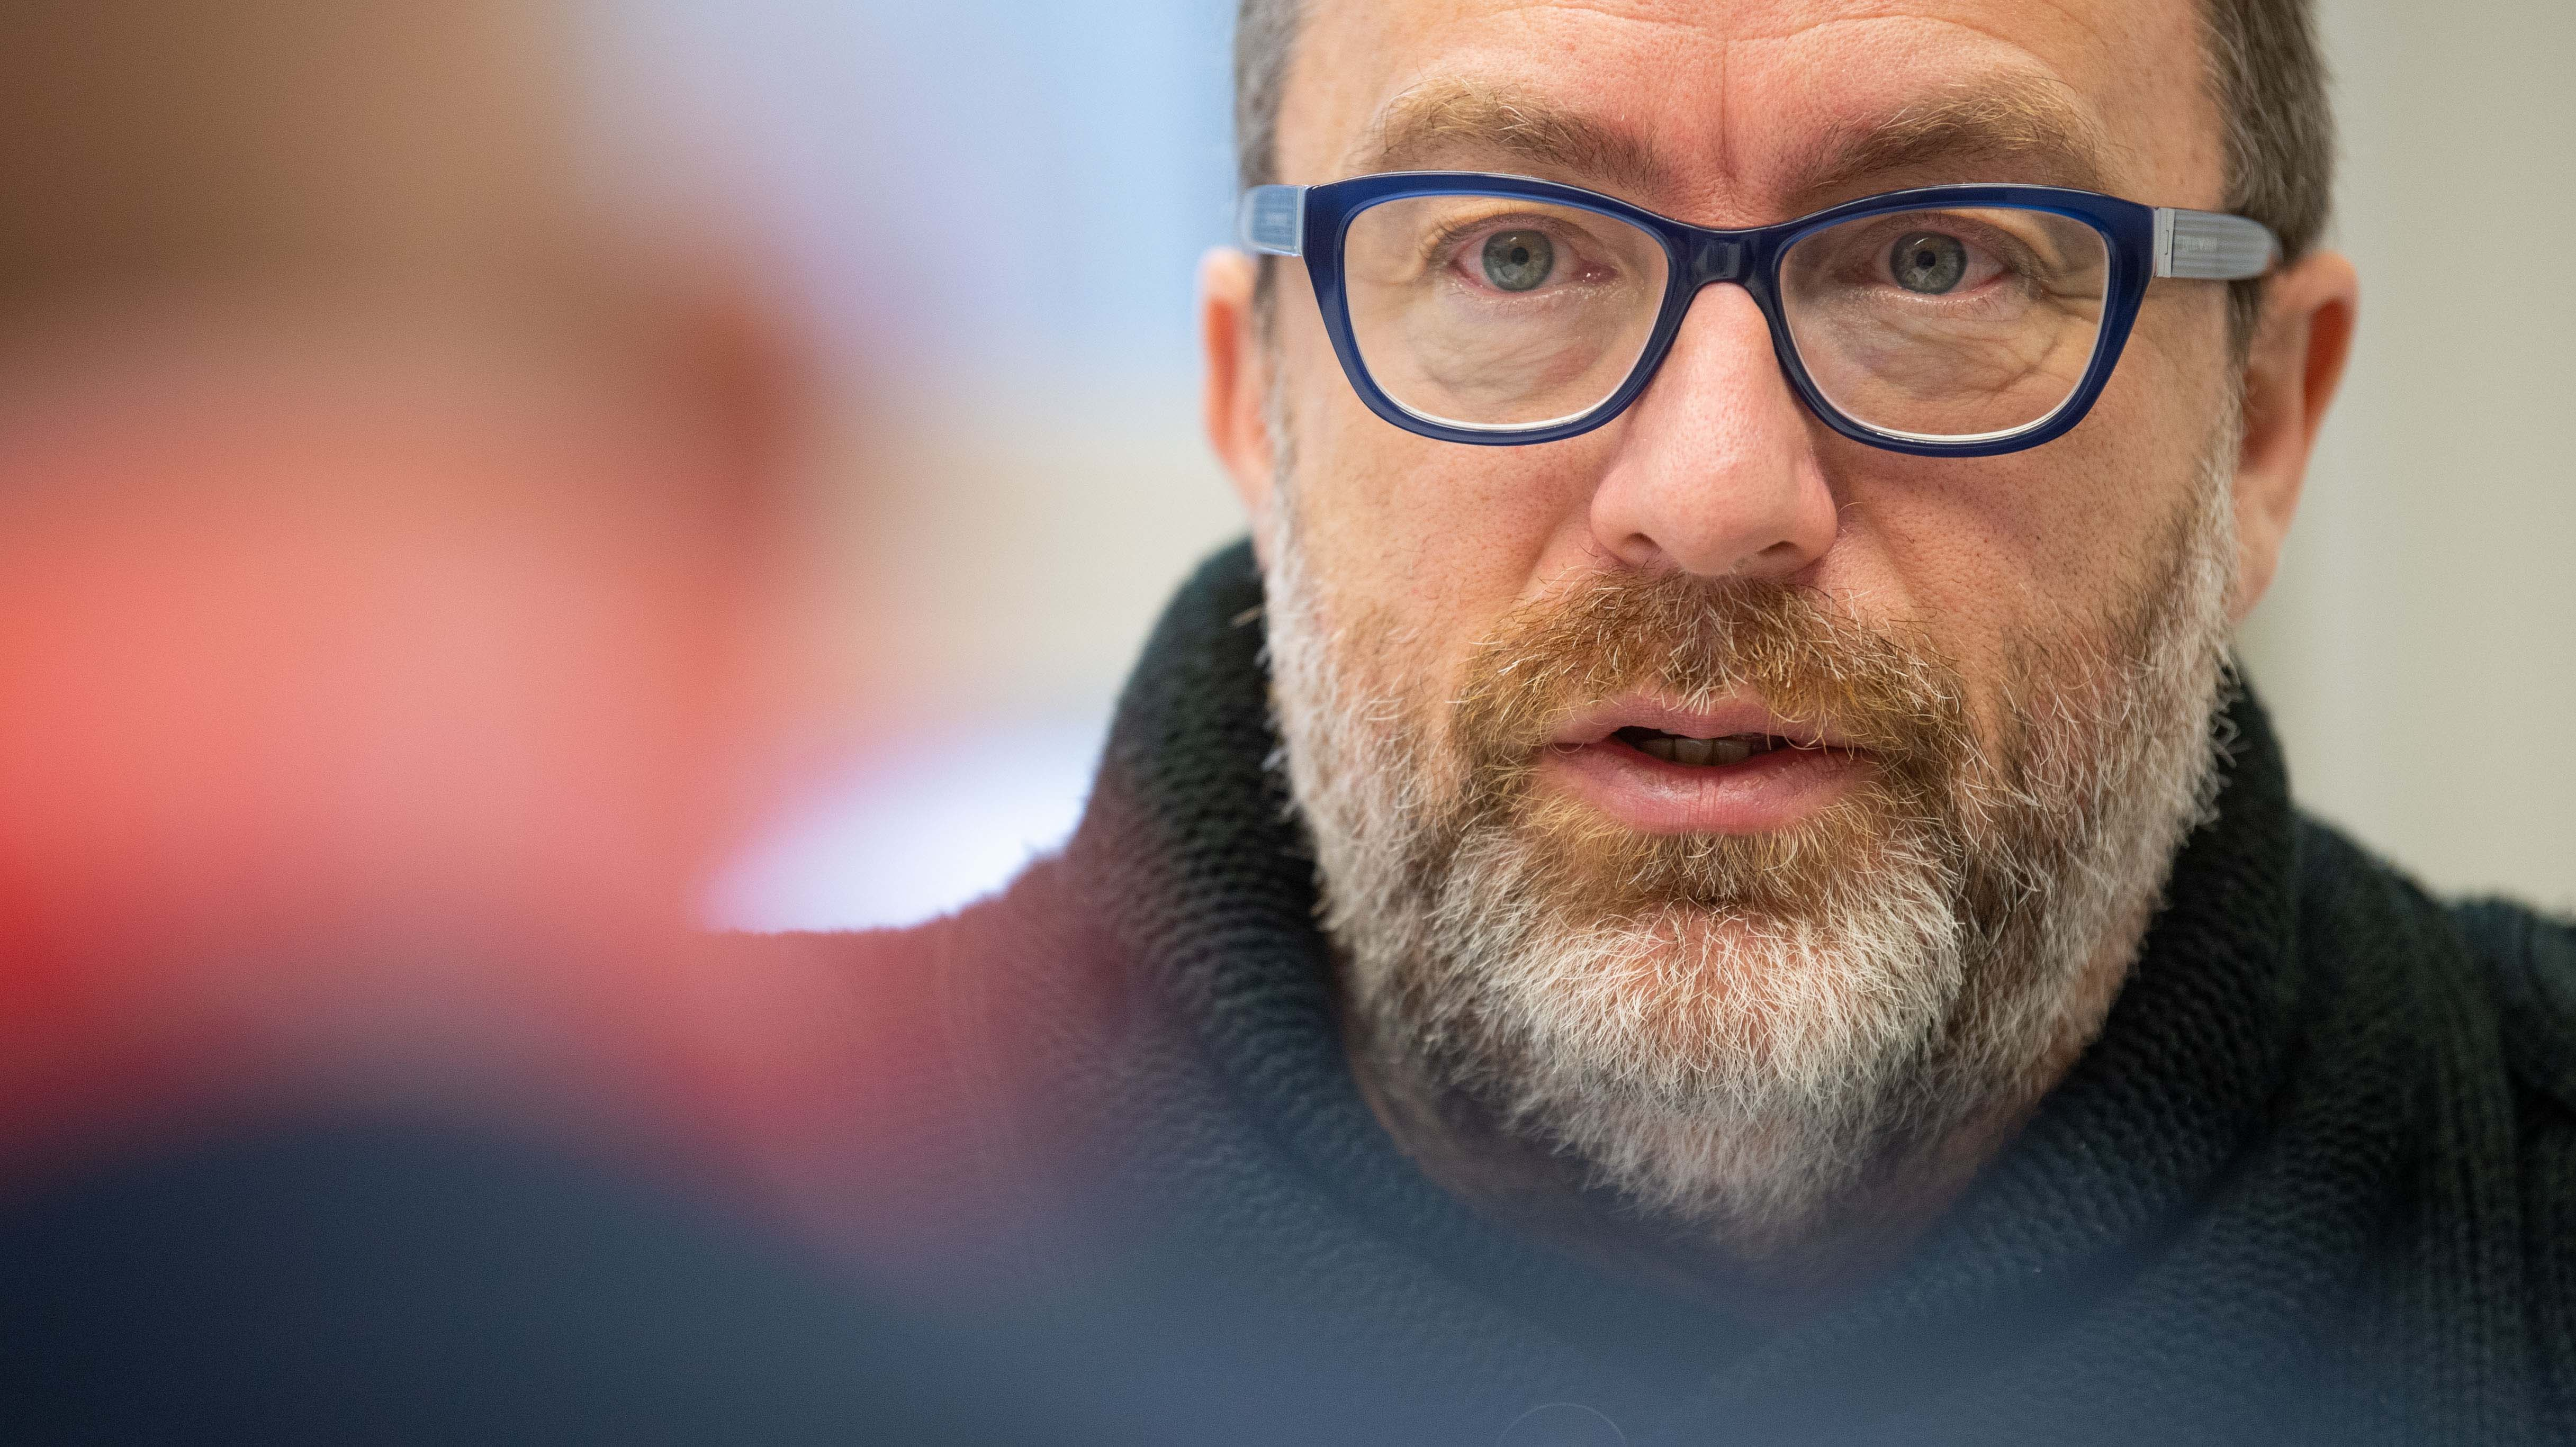 Jimmy Wales il 20 gennaio 2020 al DLD (Digital Life Design) innovation conference. (crediti immagine: Lino Mirgeler/picture alliance via Getty Images)